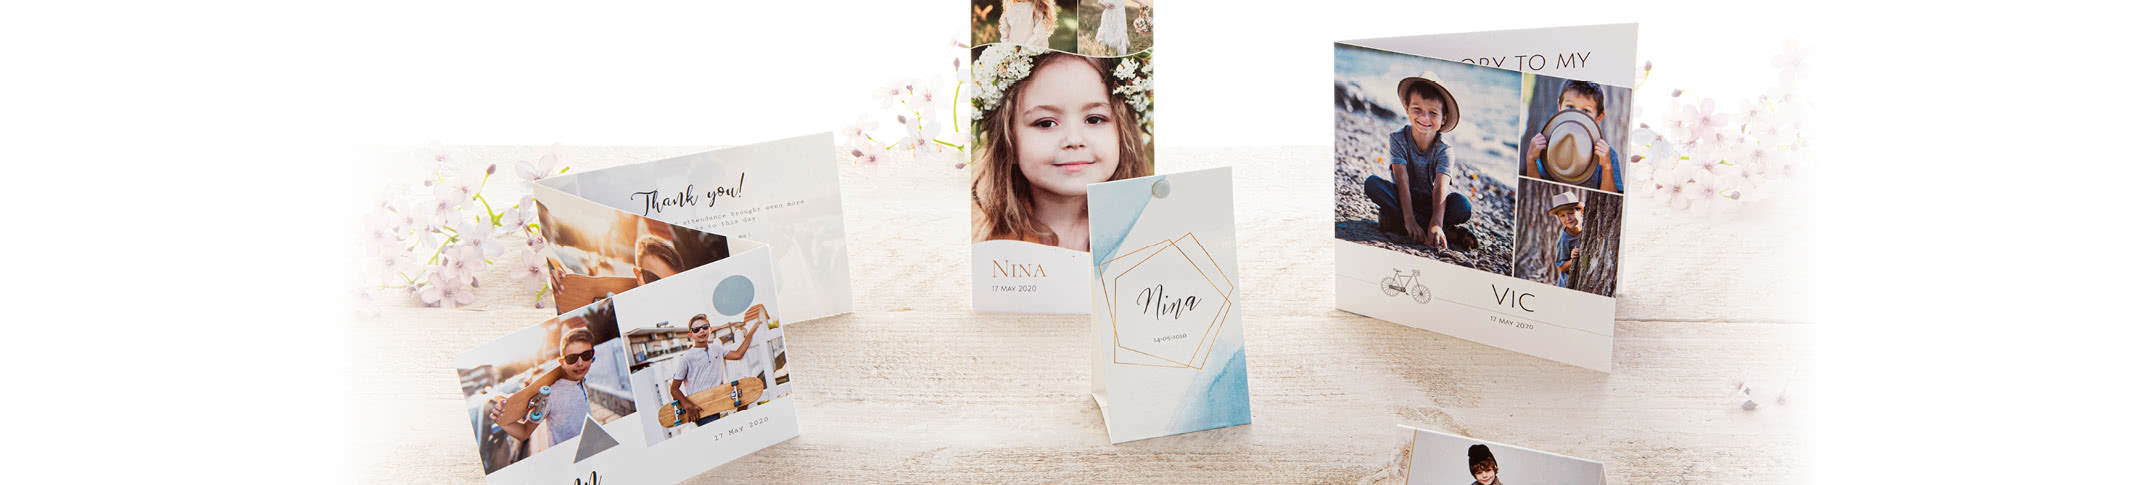 Faire-part de communion & invitations 2020 smartphoto